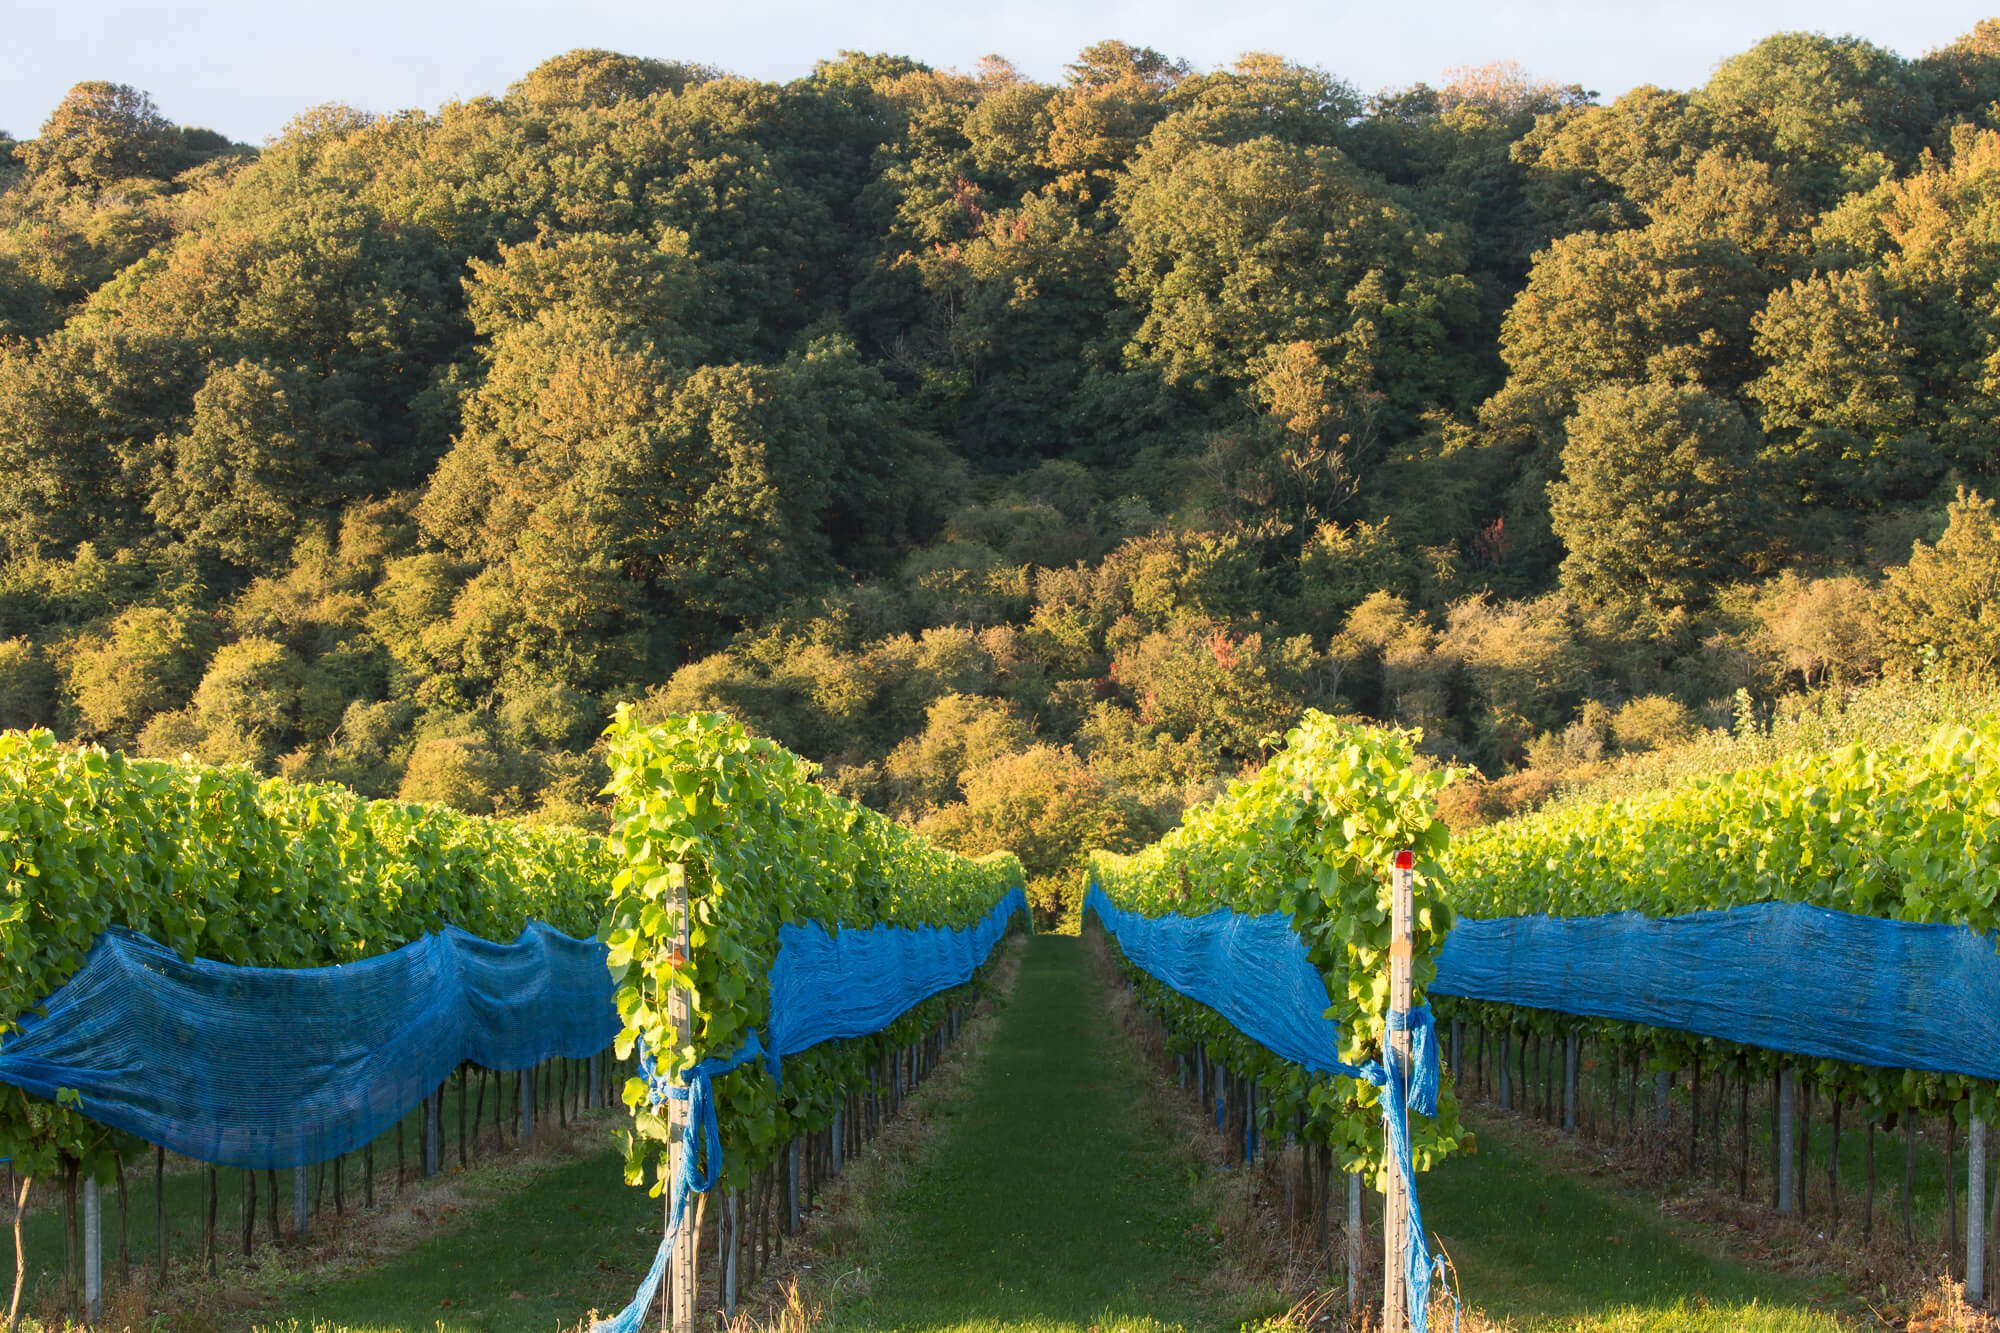 Vines Covered in Netting